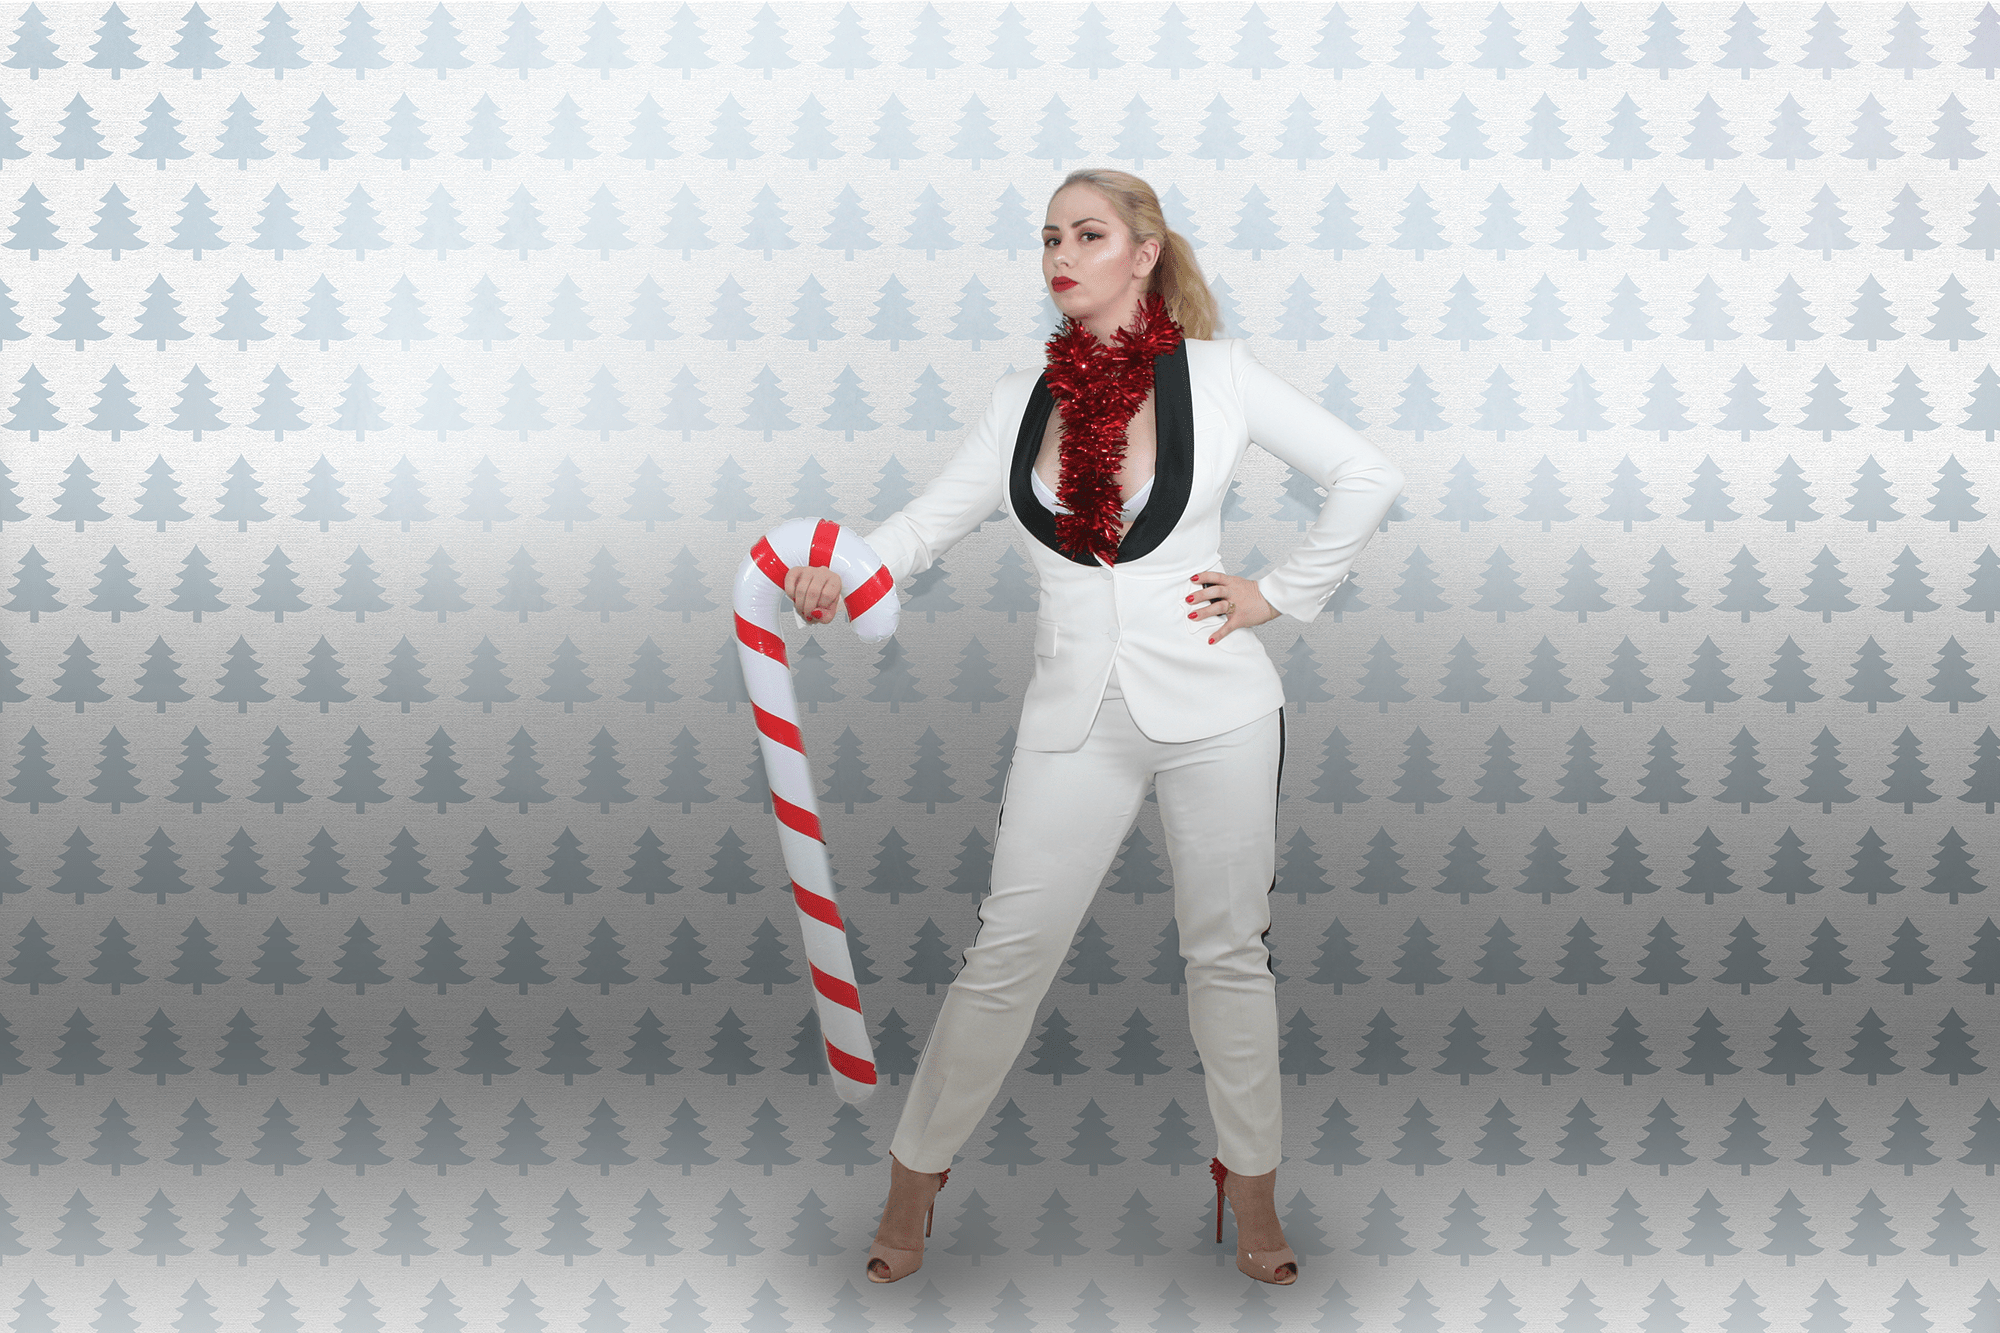 The Shoot: A Christmas Editorial, part 1